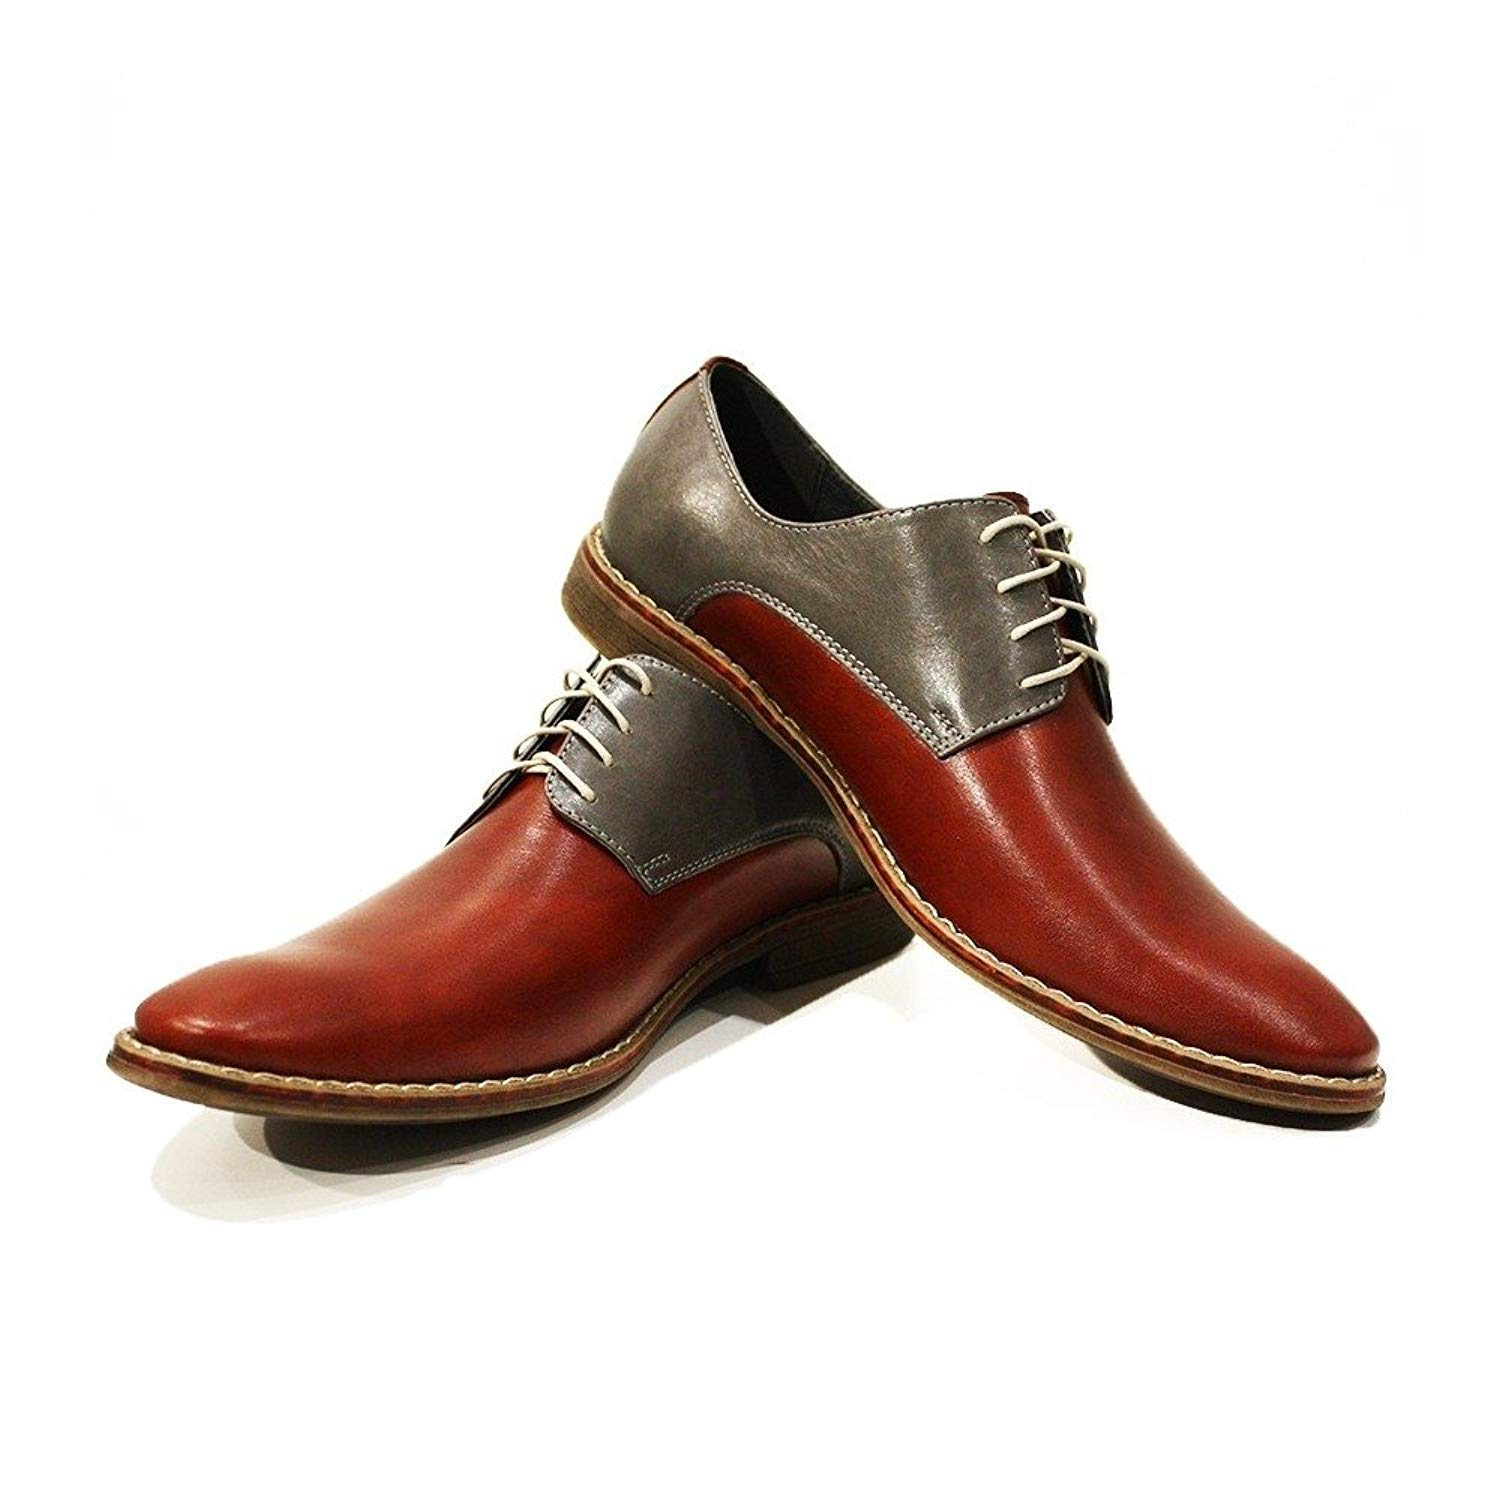 Modello Adriano - Handmade Italian Mens Red Oxfords Dress Shoes - Cowhide Smooth Leather - Lace-up